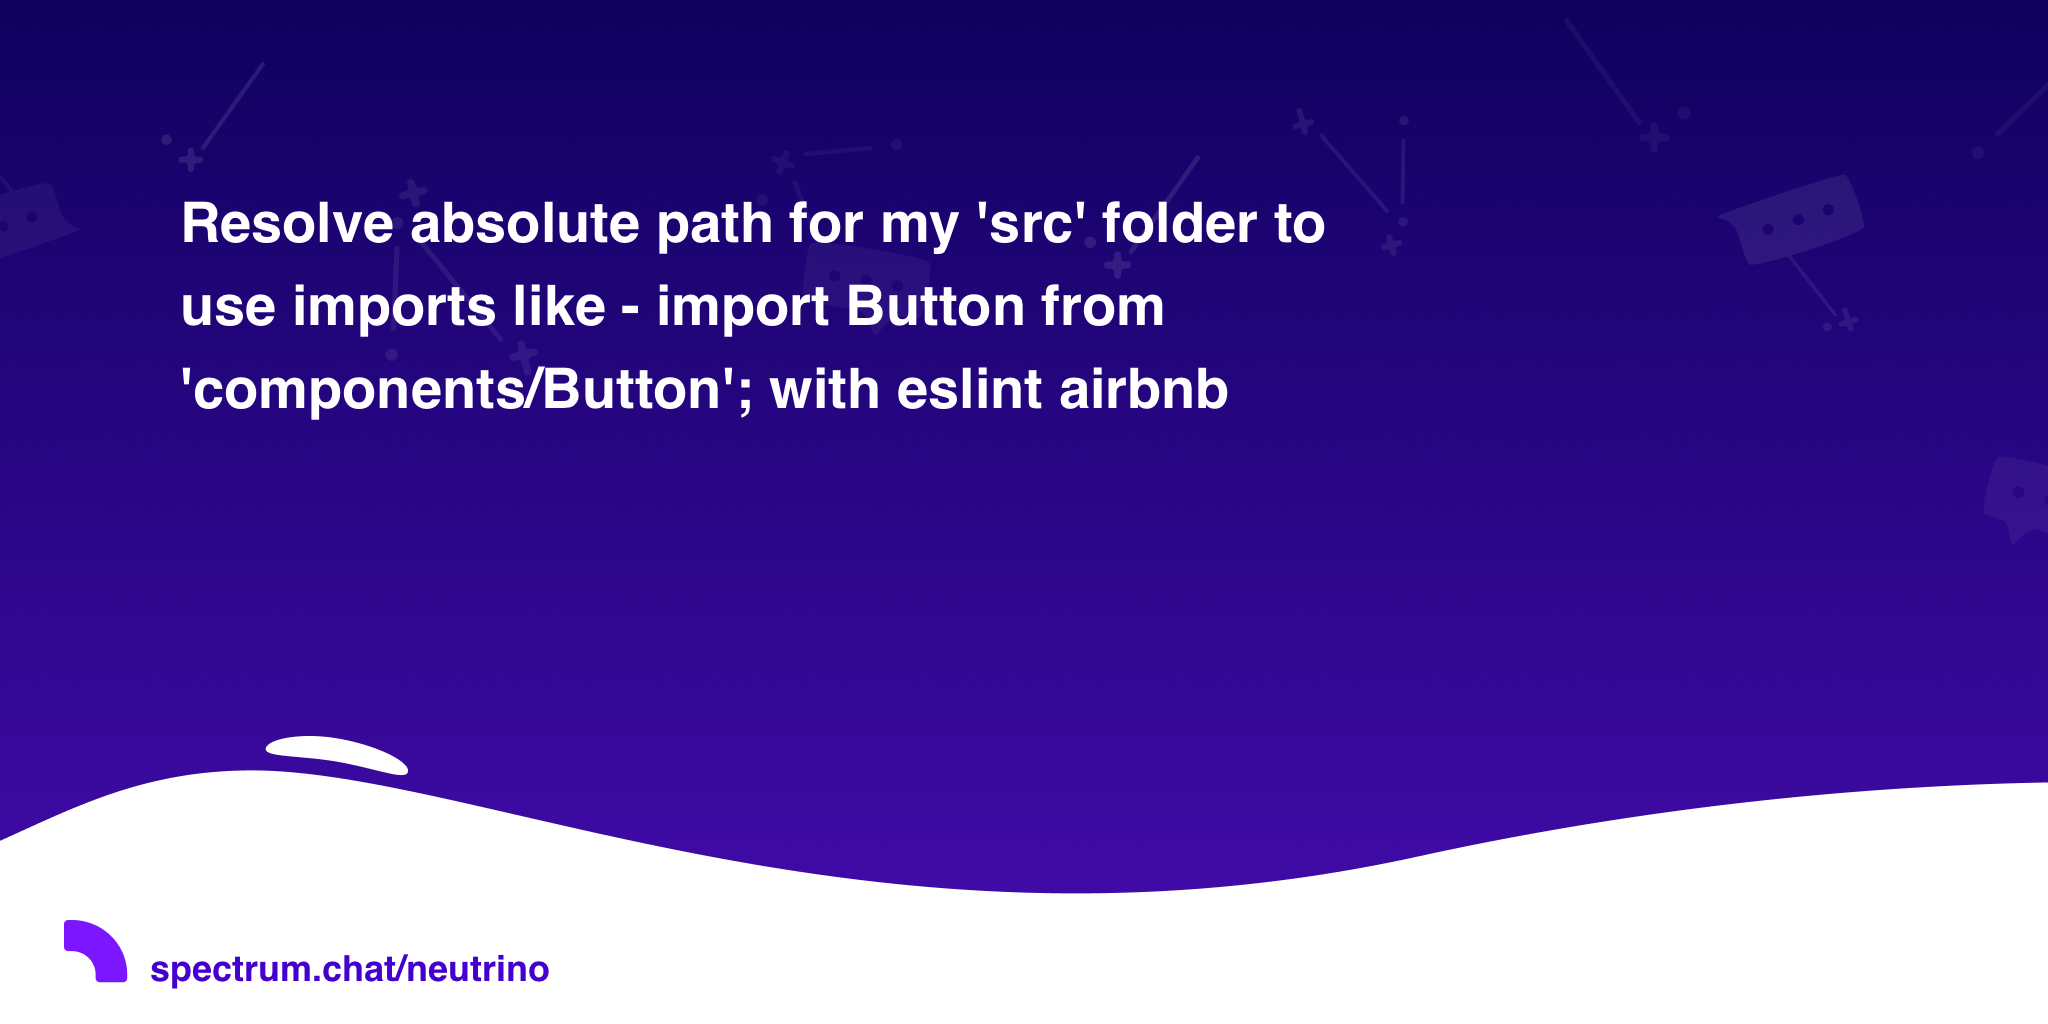 Resolve absolute path for my 'src' folder to use imports